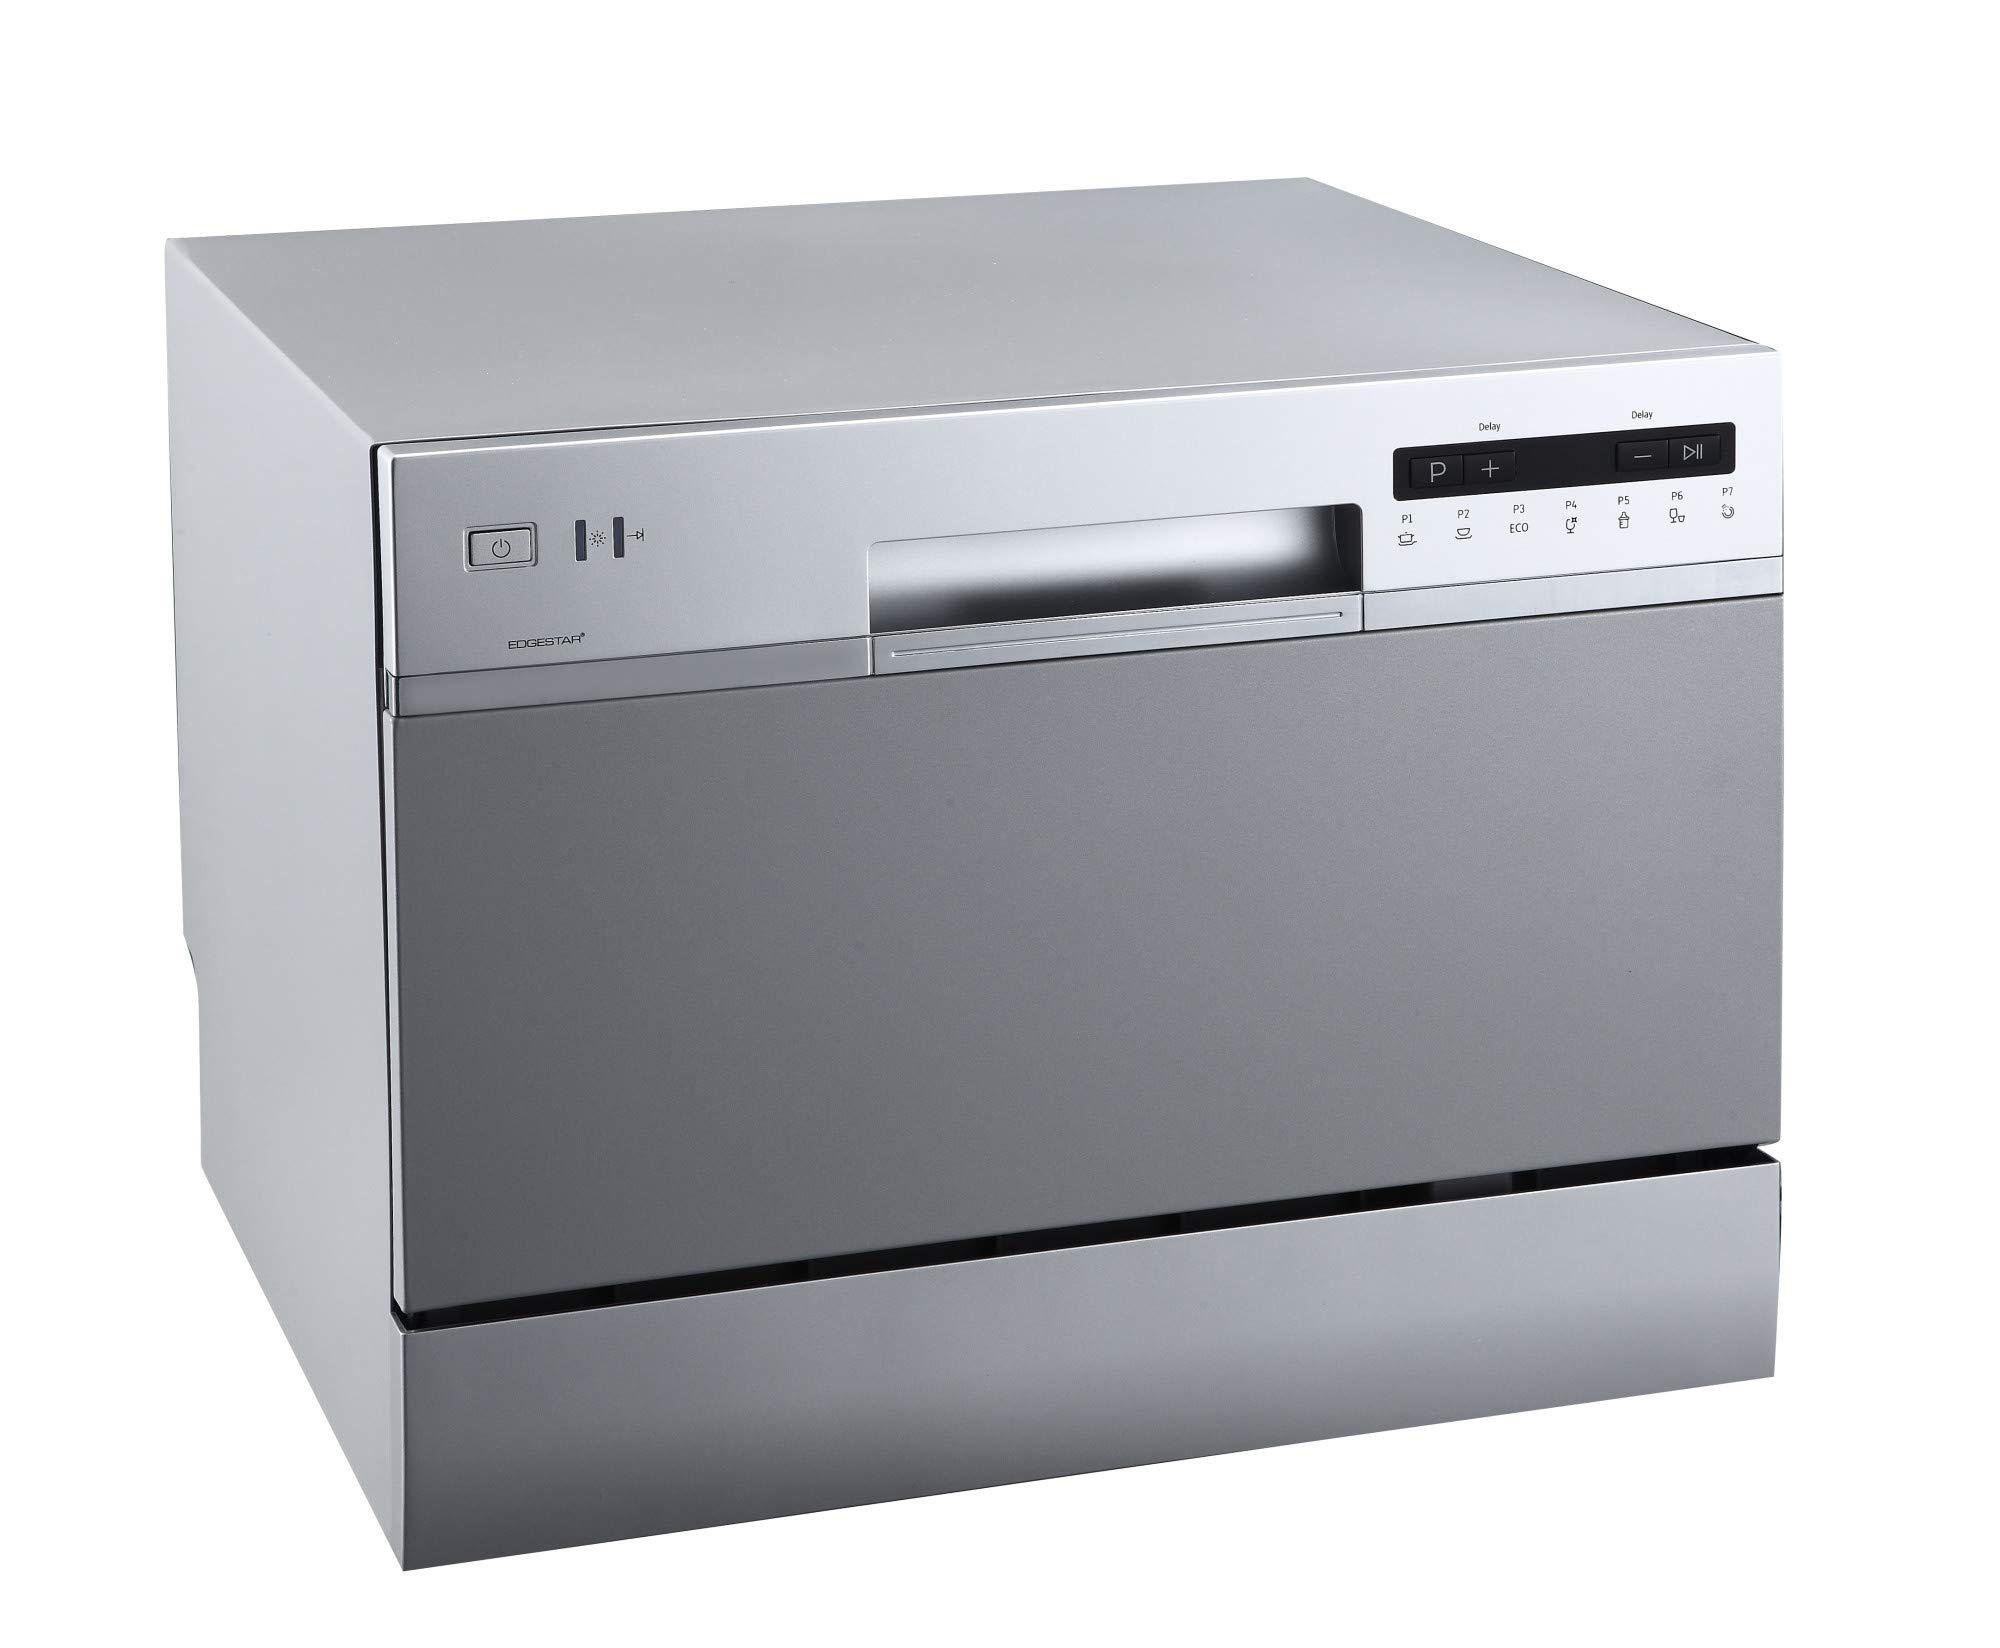 EdgeStar DWP62SV 6 Place Setting Energy Star Rated Portable Countertop Dishwasher - Silver by EdgeStar